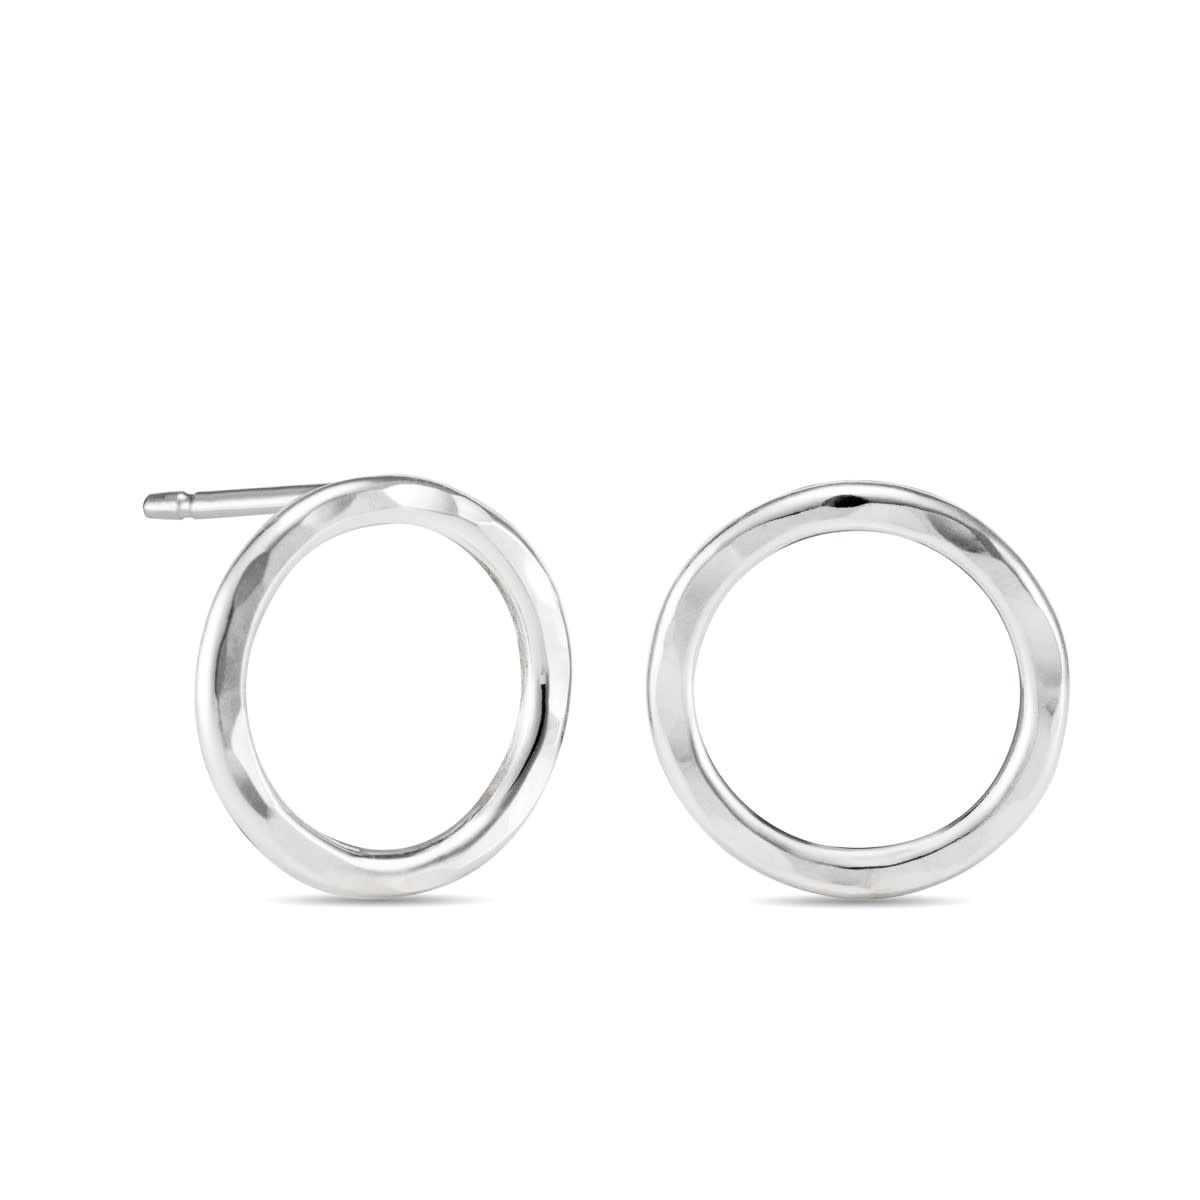 Mikel Grant Jewelry Circlet Stud Earrings